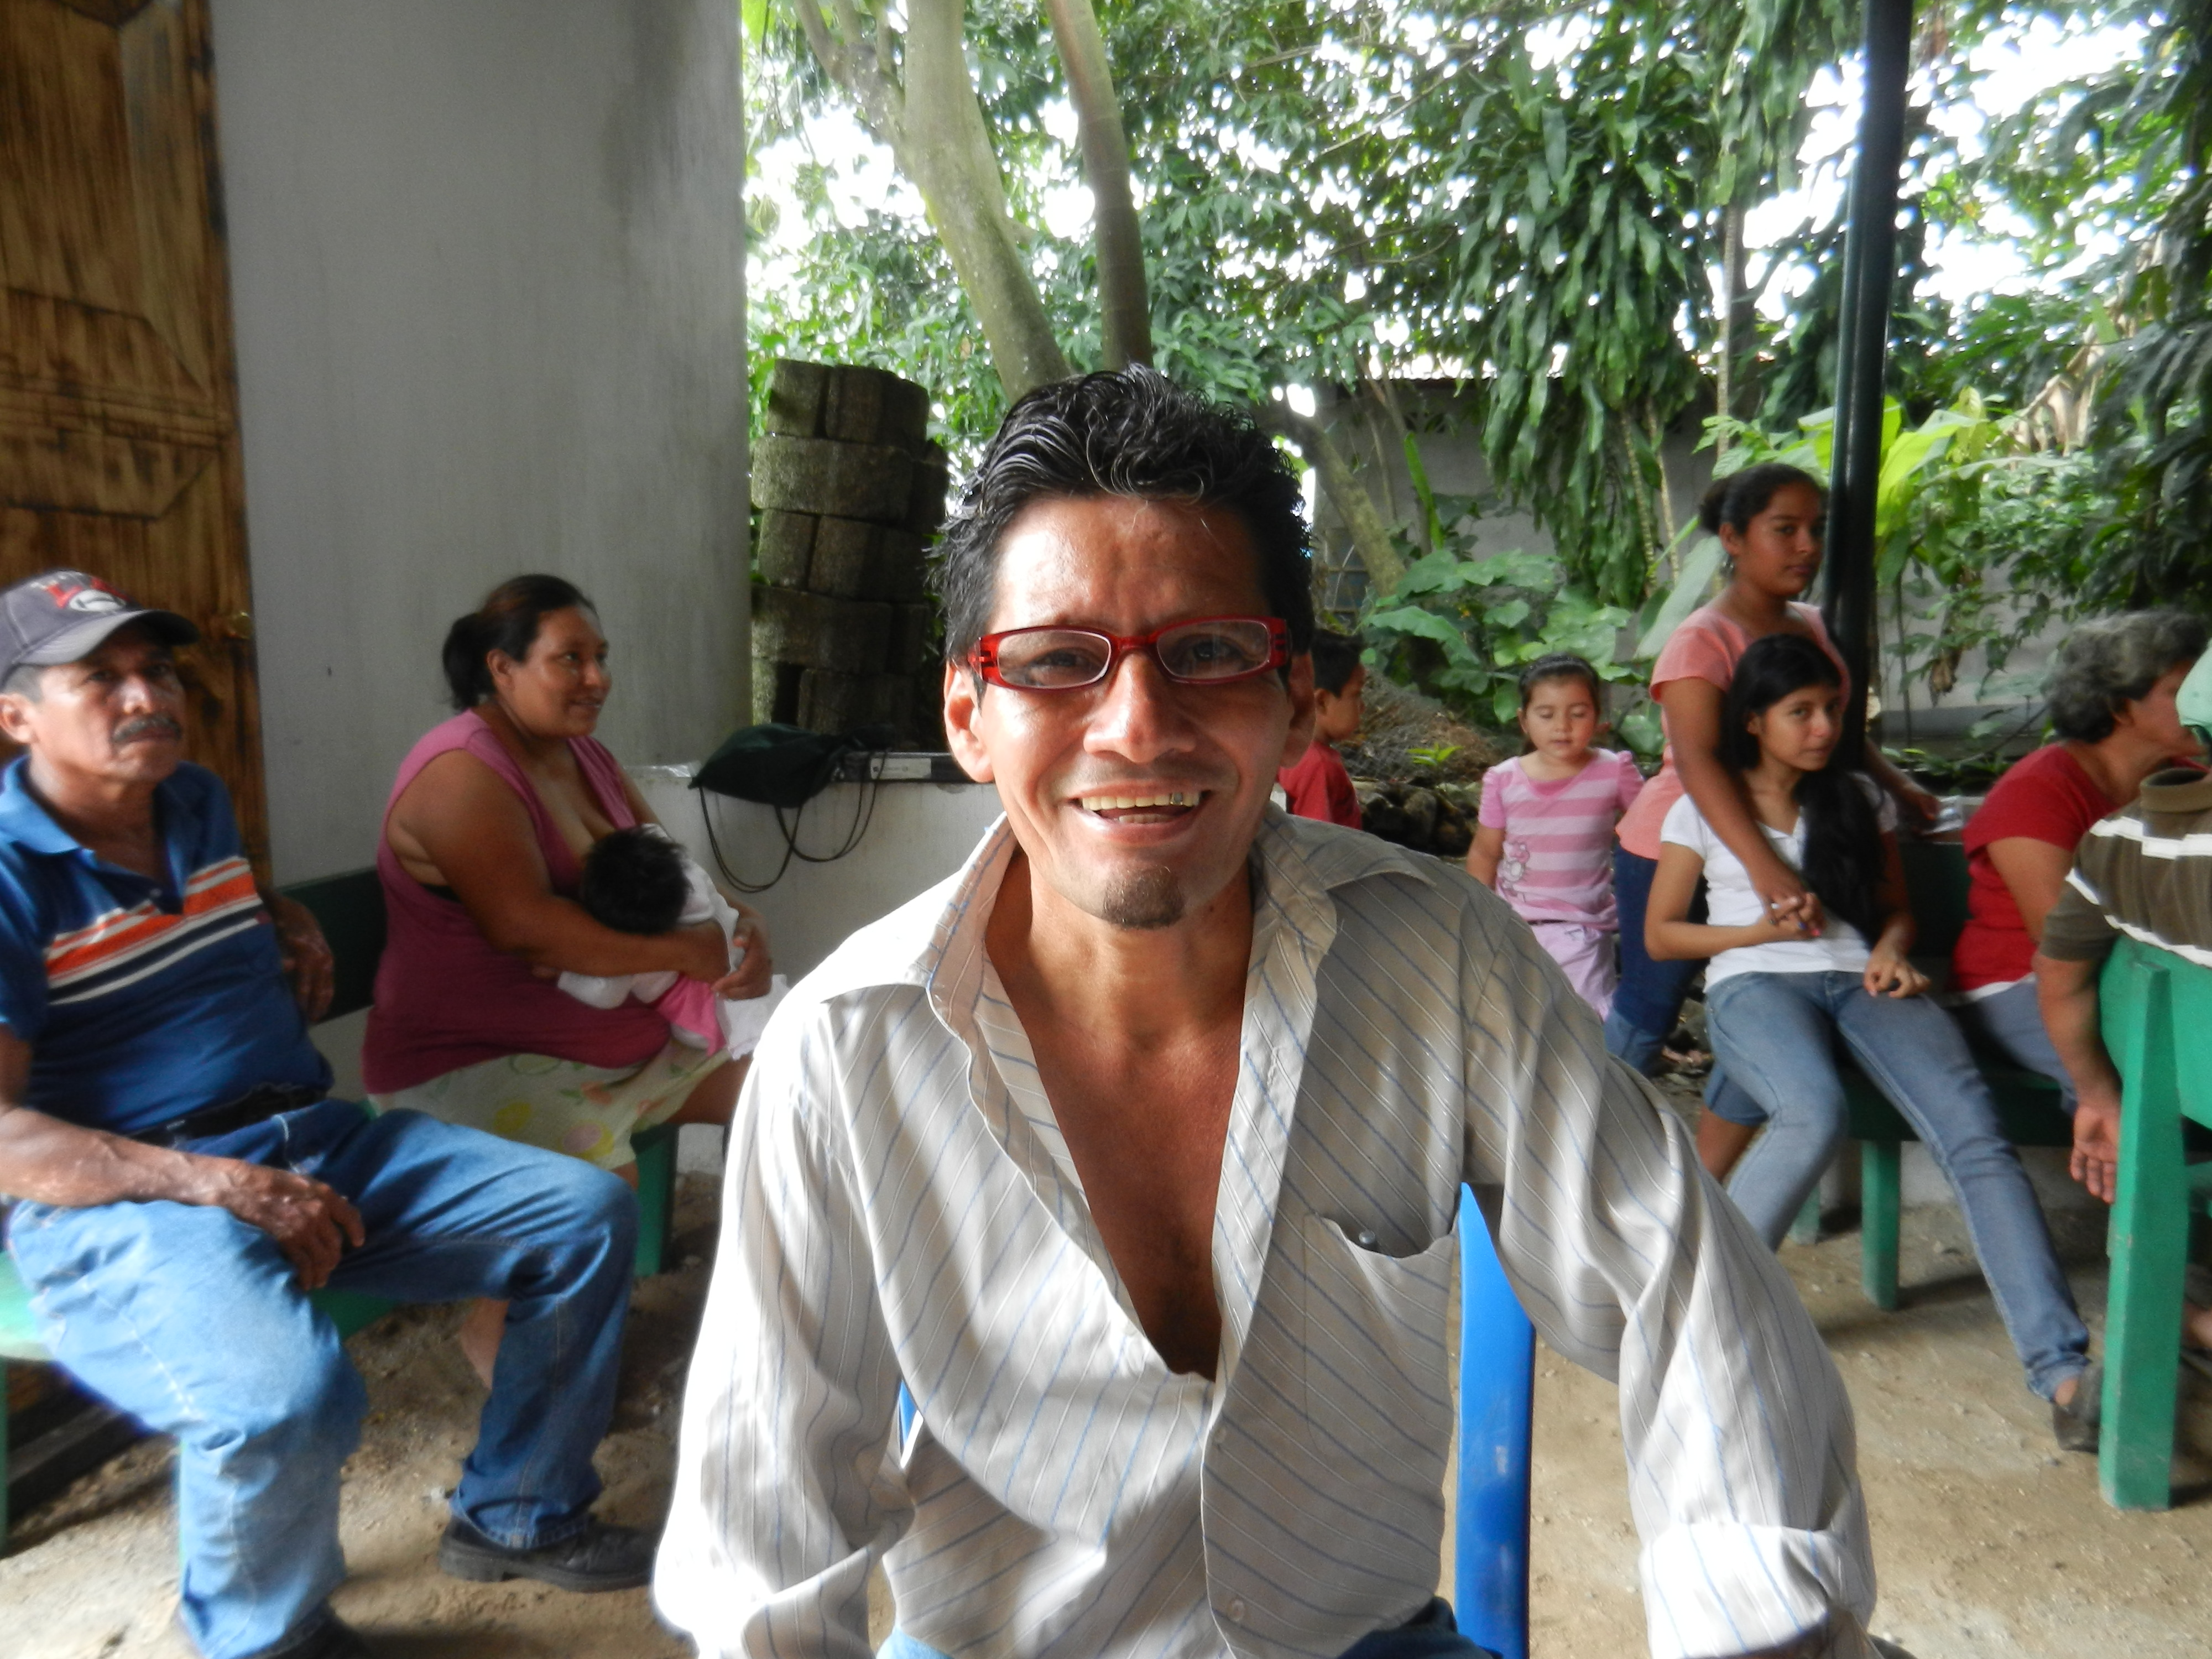 A gentleman happy to have received a pair of glasses at the Santo Domingo Suchitepéquez clinic.